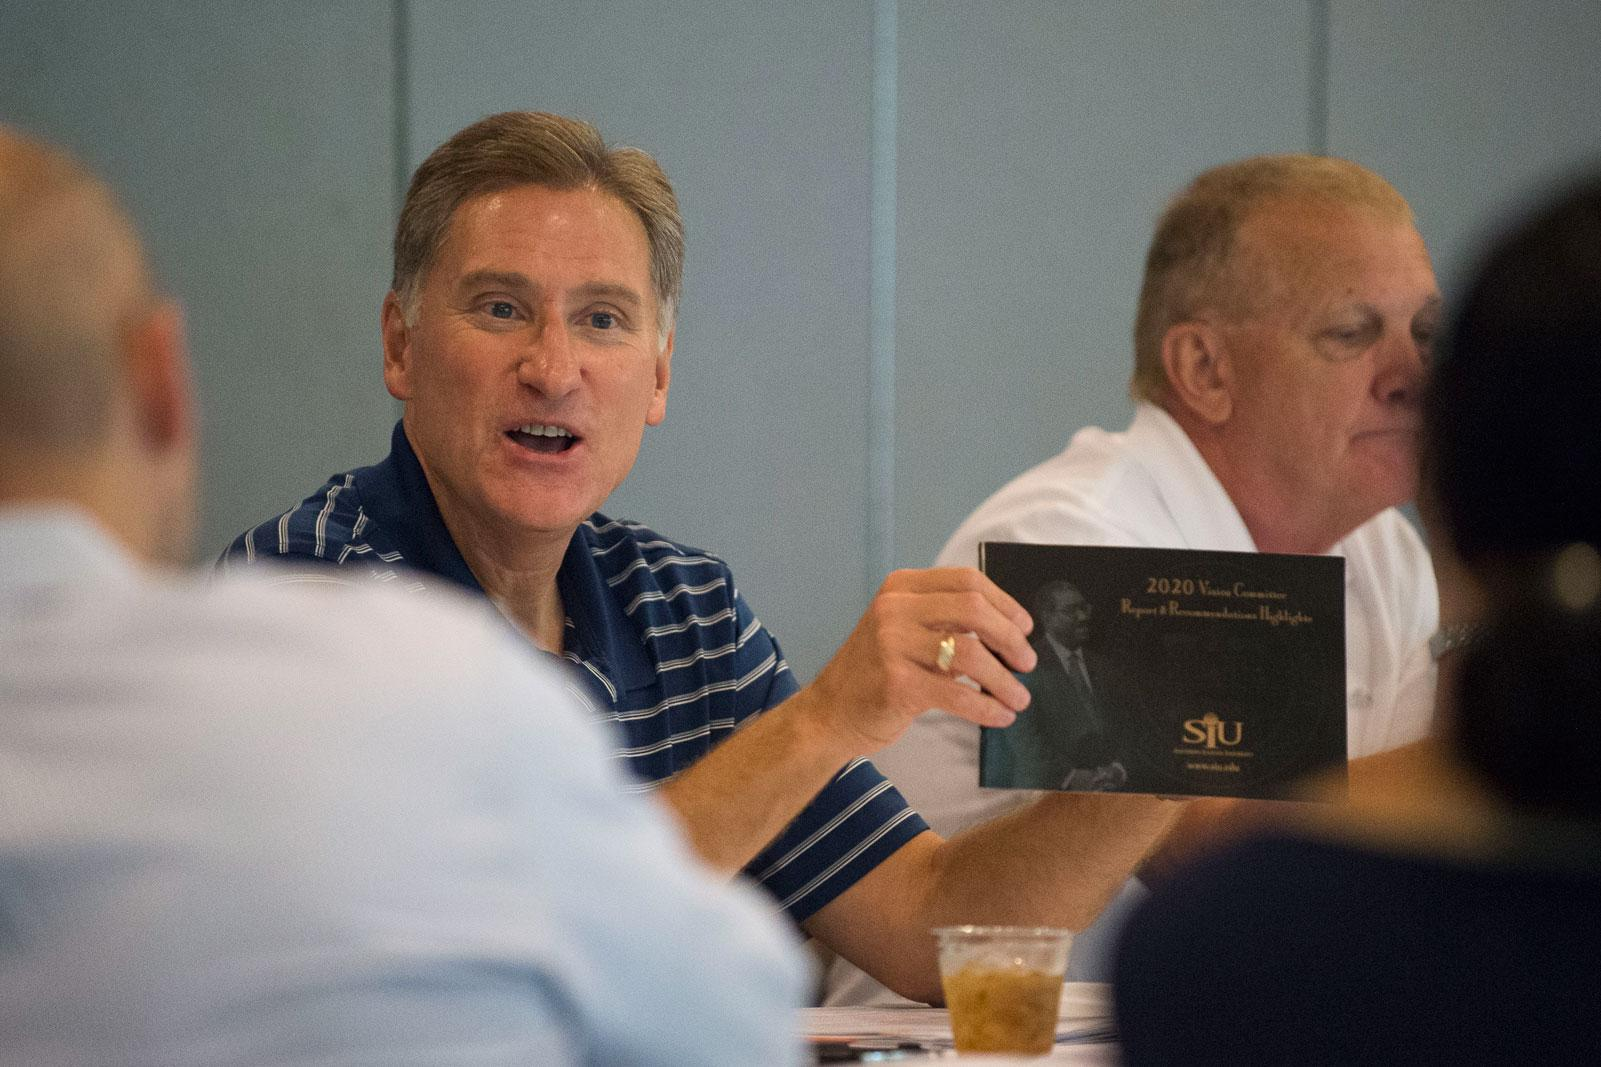 SIU President Randy Dunn presents past long-term plans during a special SIU Board of Trustees meeting on Thursday, Aug. 25, 2016, at Touch of Nature Environmental Center in Makanda. (Ryan Michalesko | @photosbylesko)